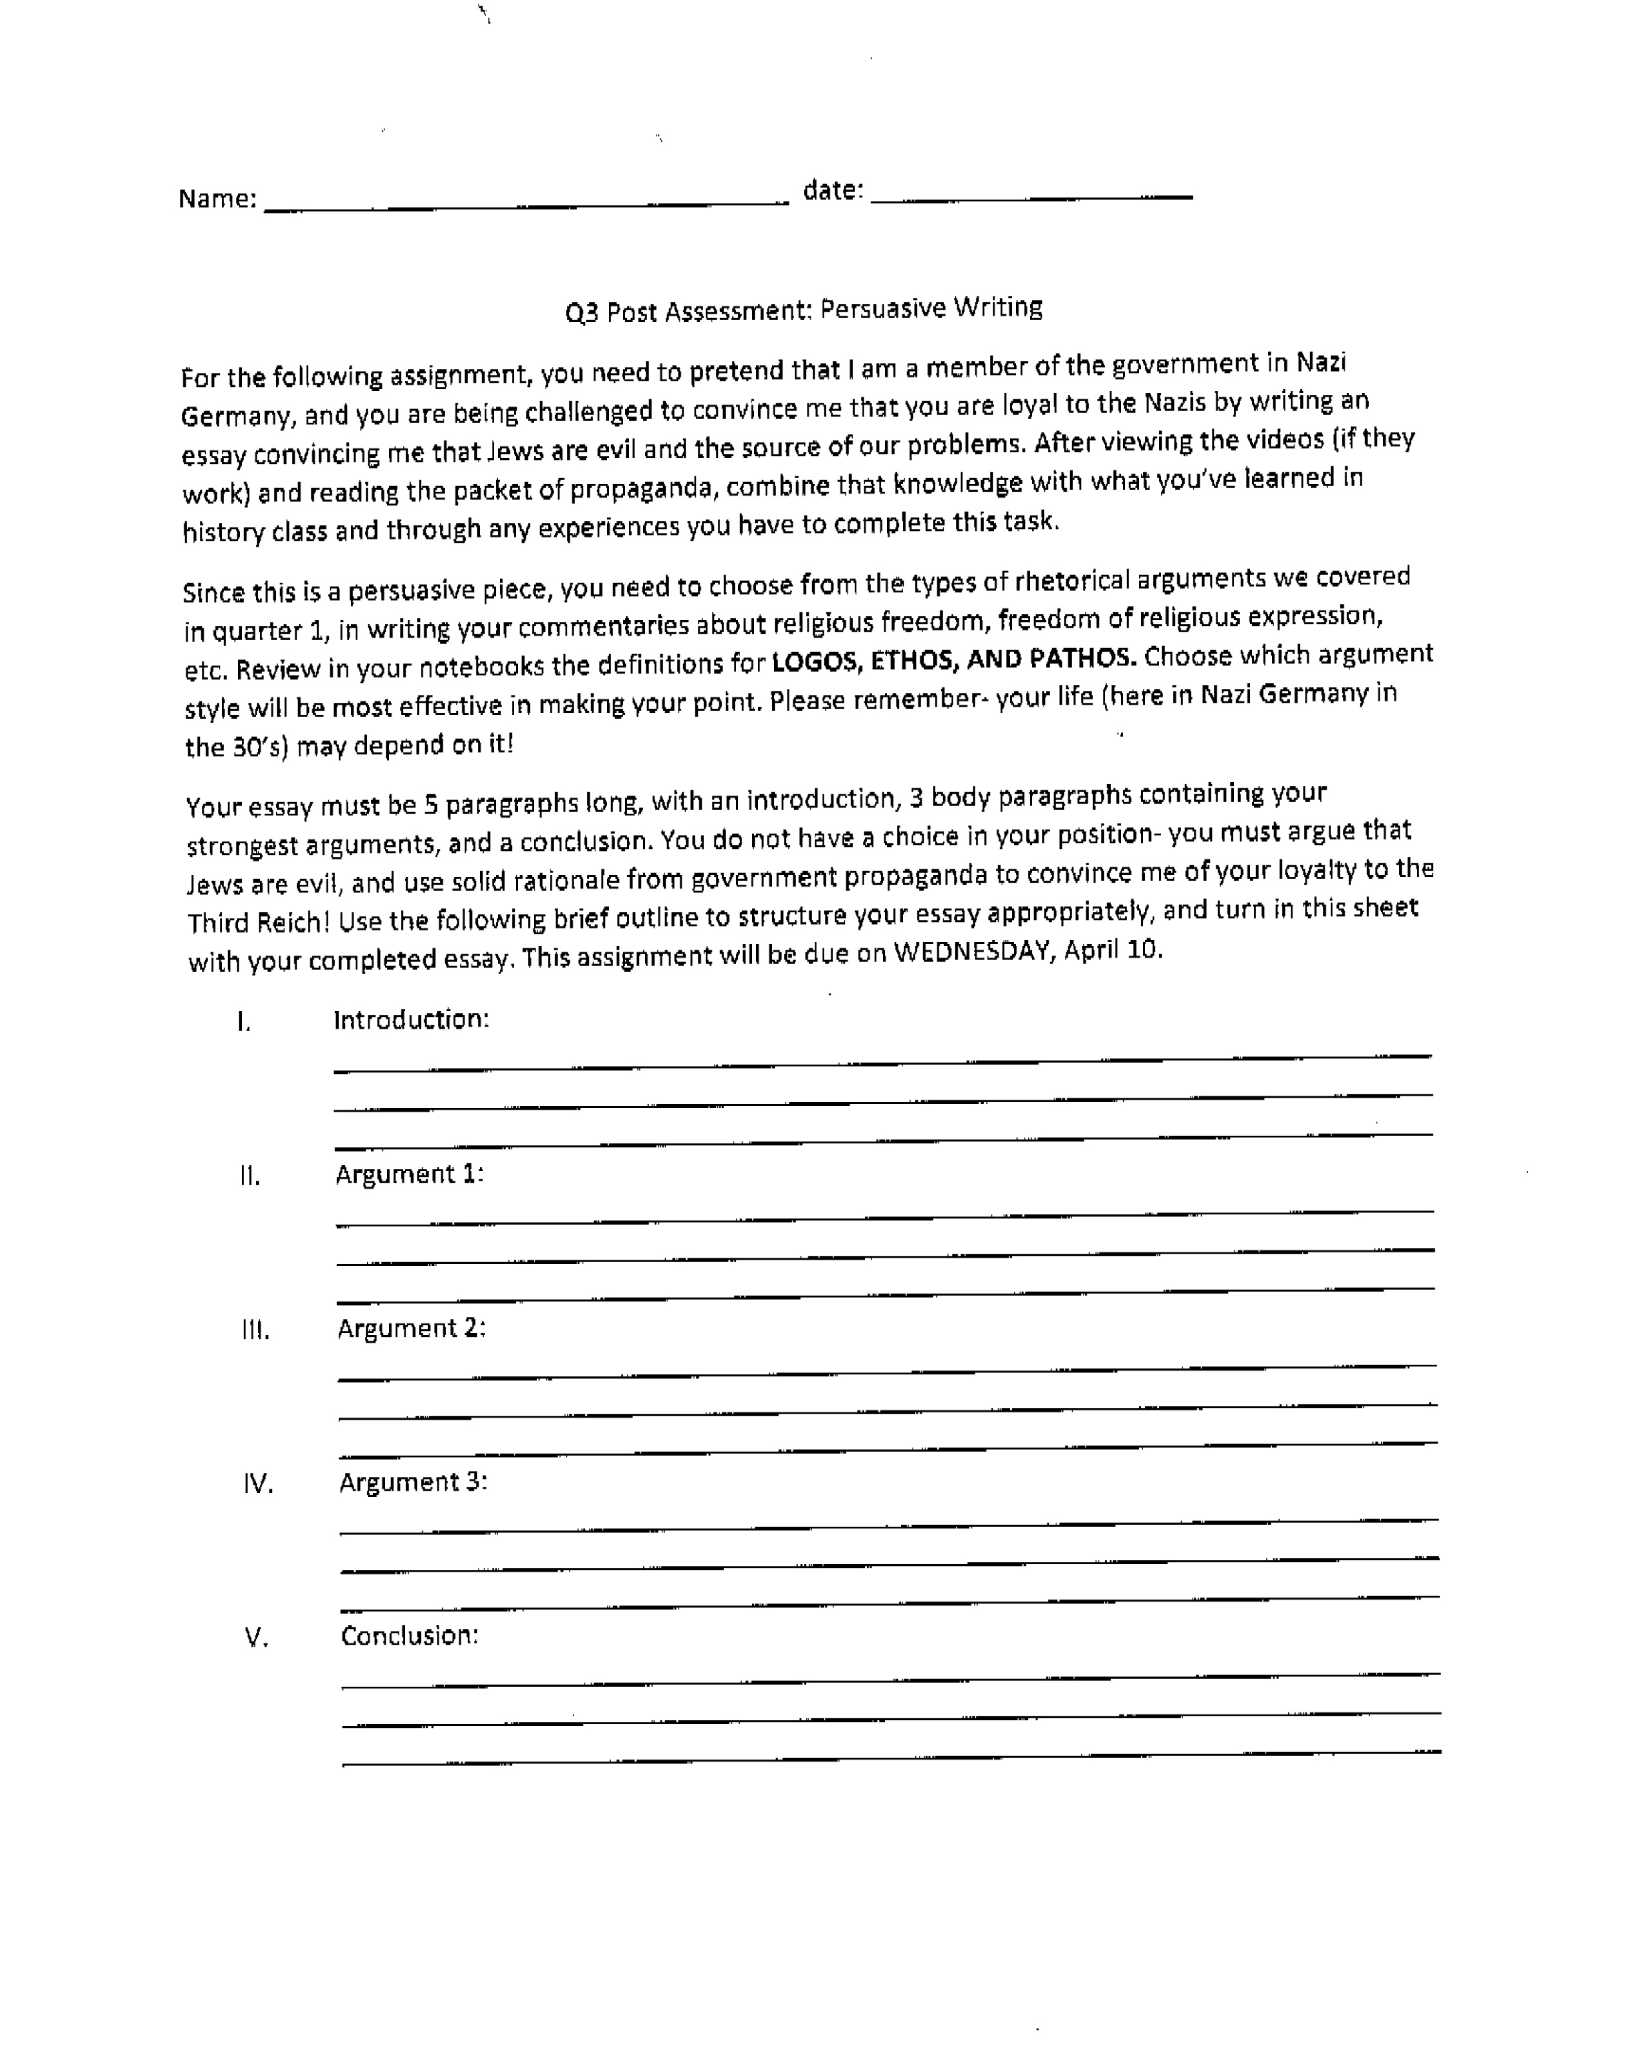 008 Global Warming Persuasive Essay Best Solutions Of Essays On Cause And Effect Marvelous Top Outline Speech Full